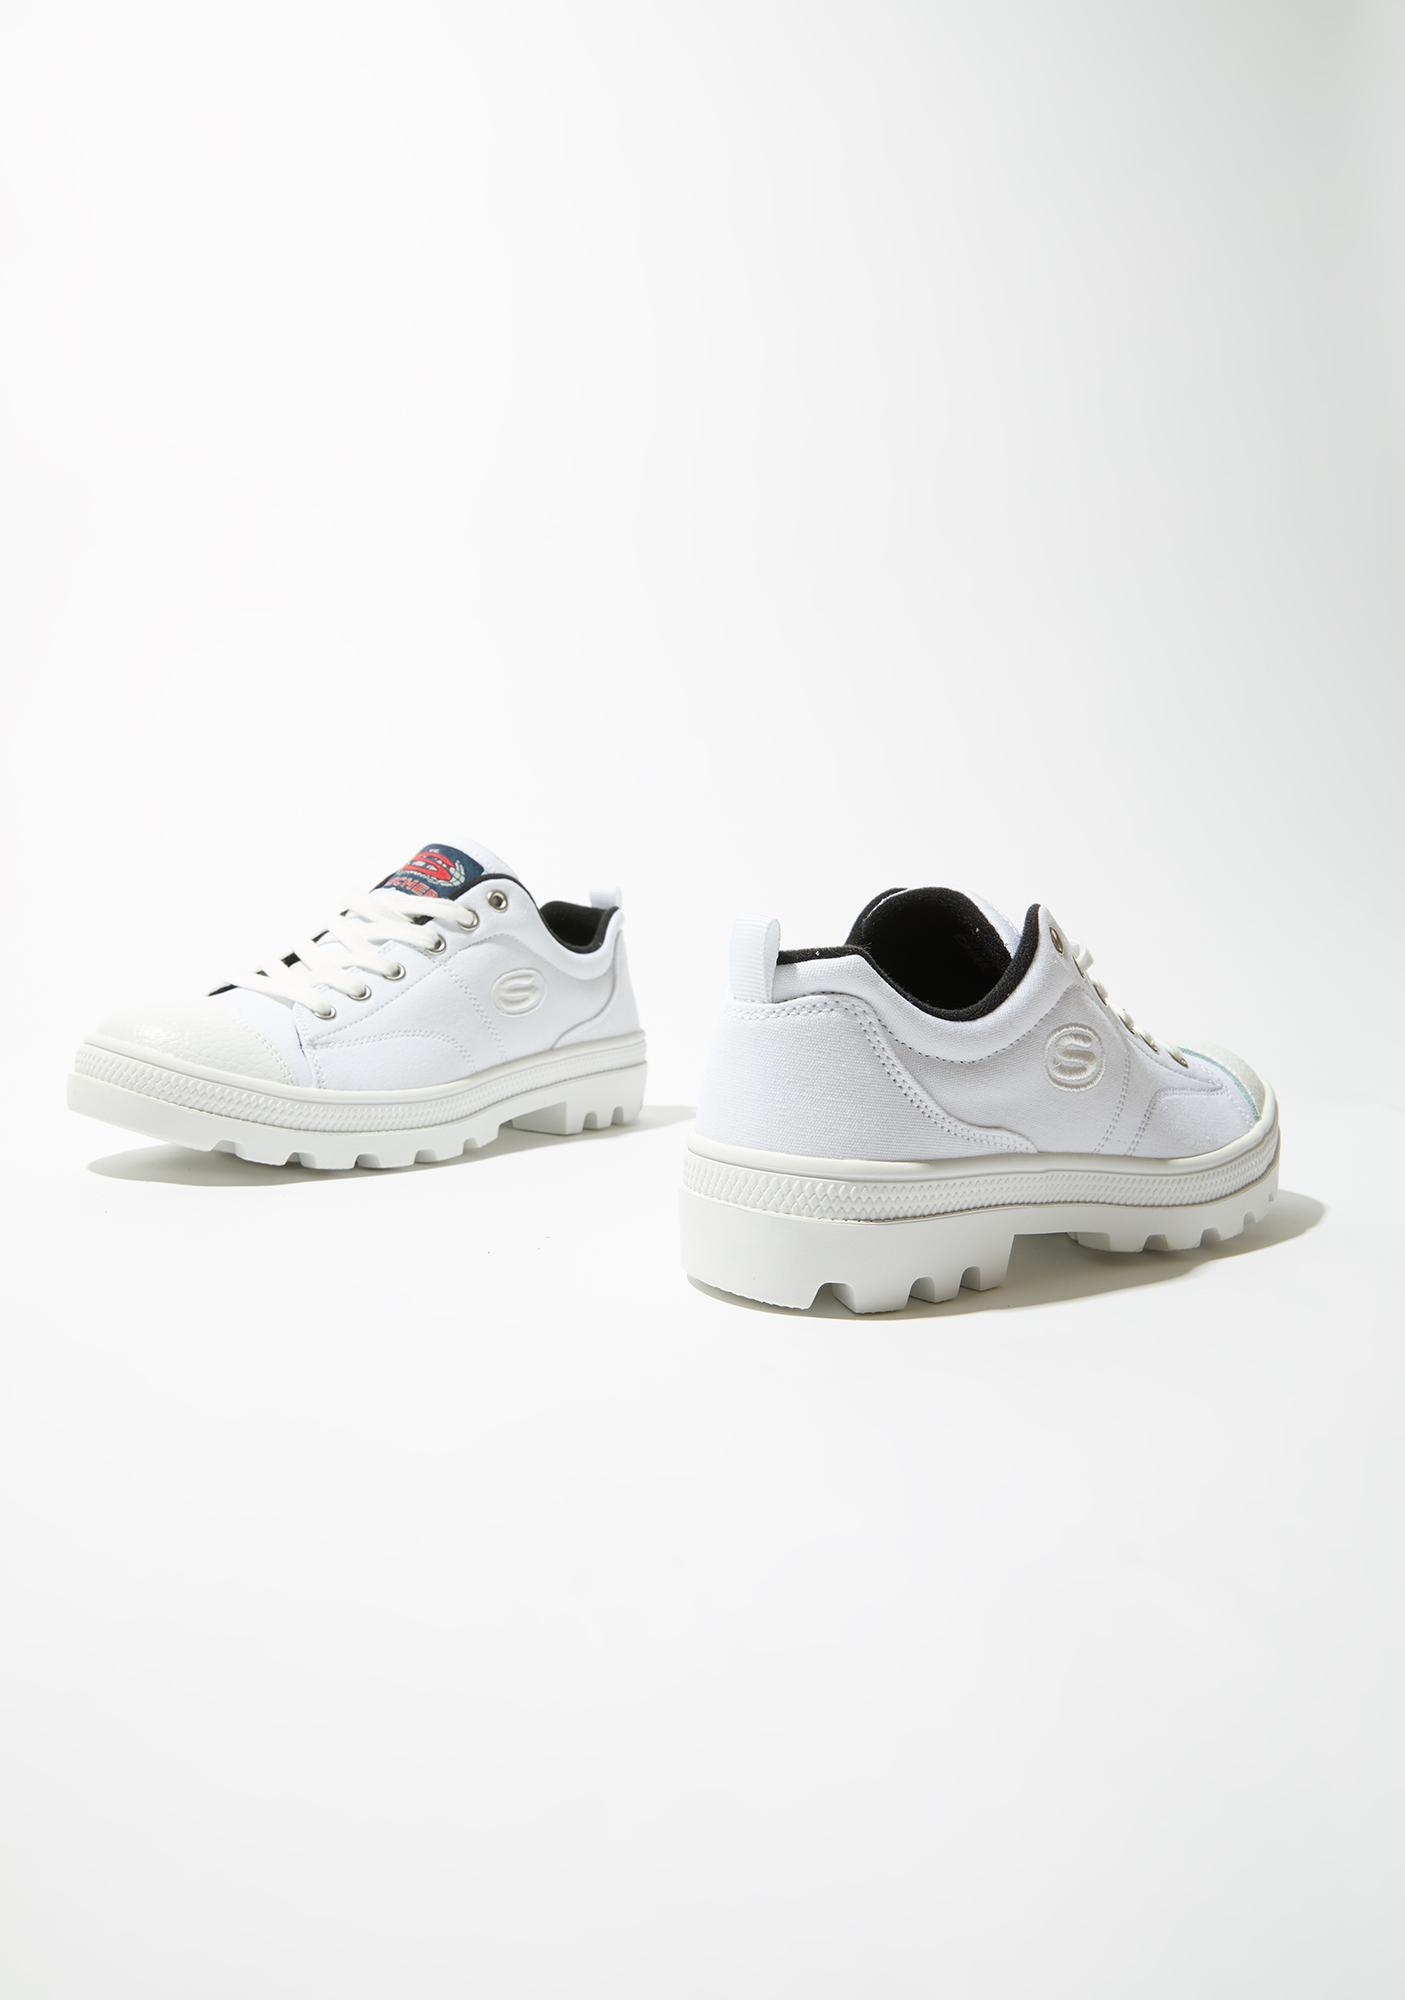 Skechers White Roadies True Roots Sneakers